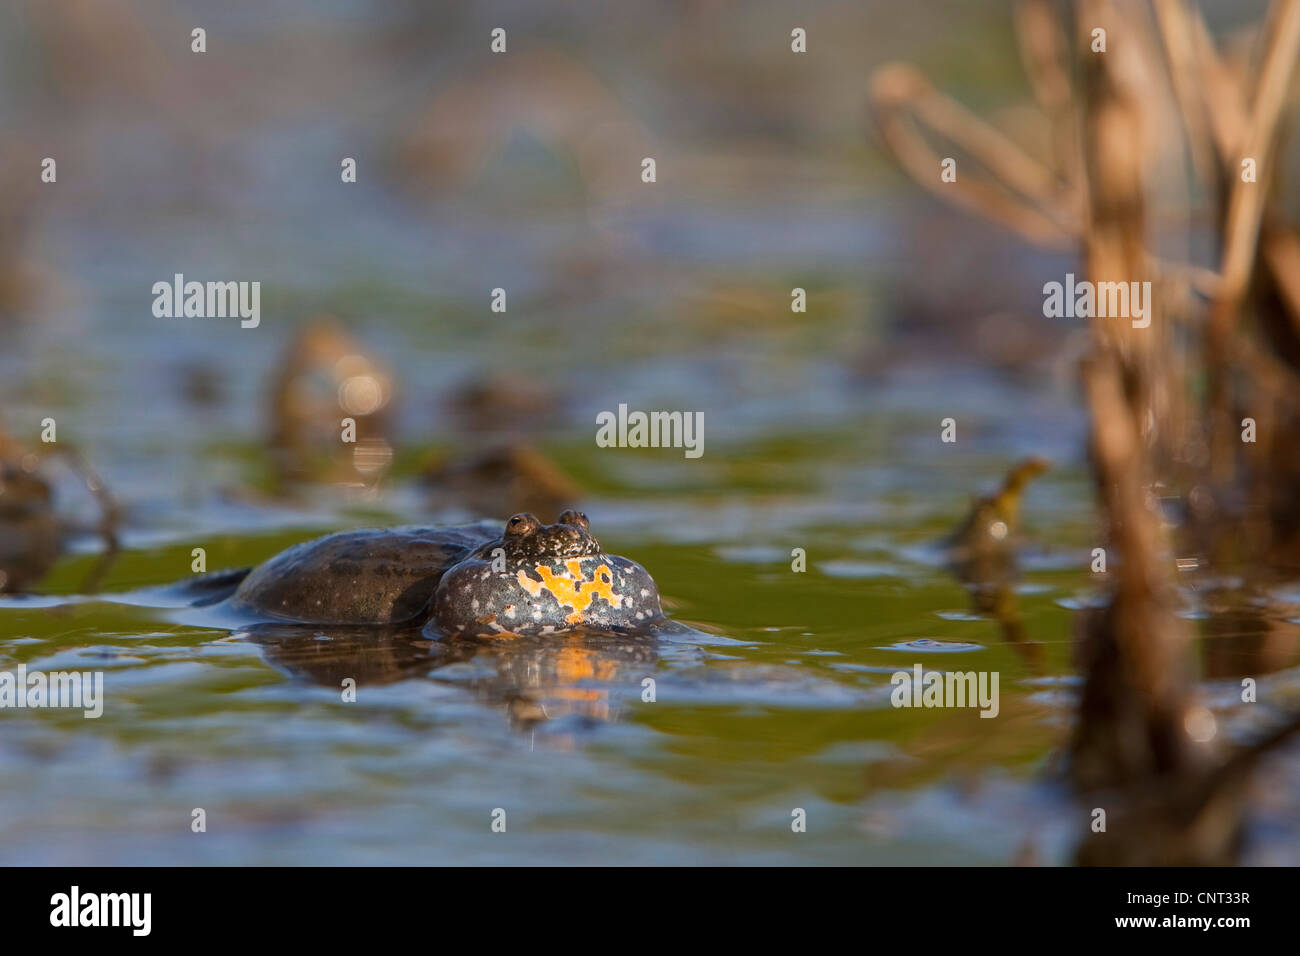 fire-bellied toad (Bombina bombina), croaking in a pond in spring, Germany - Stock Image